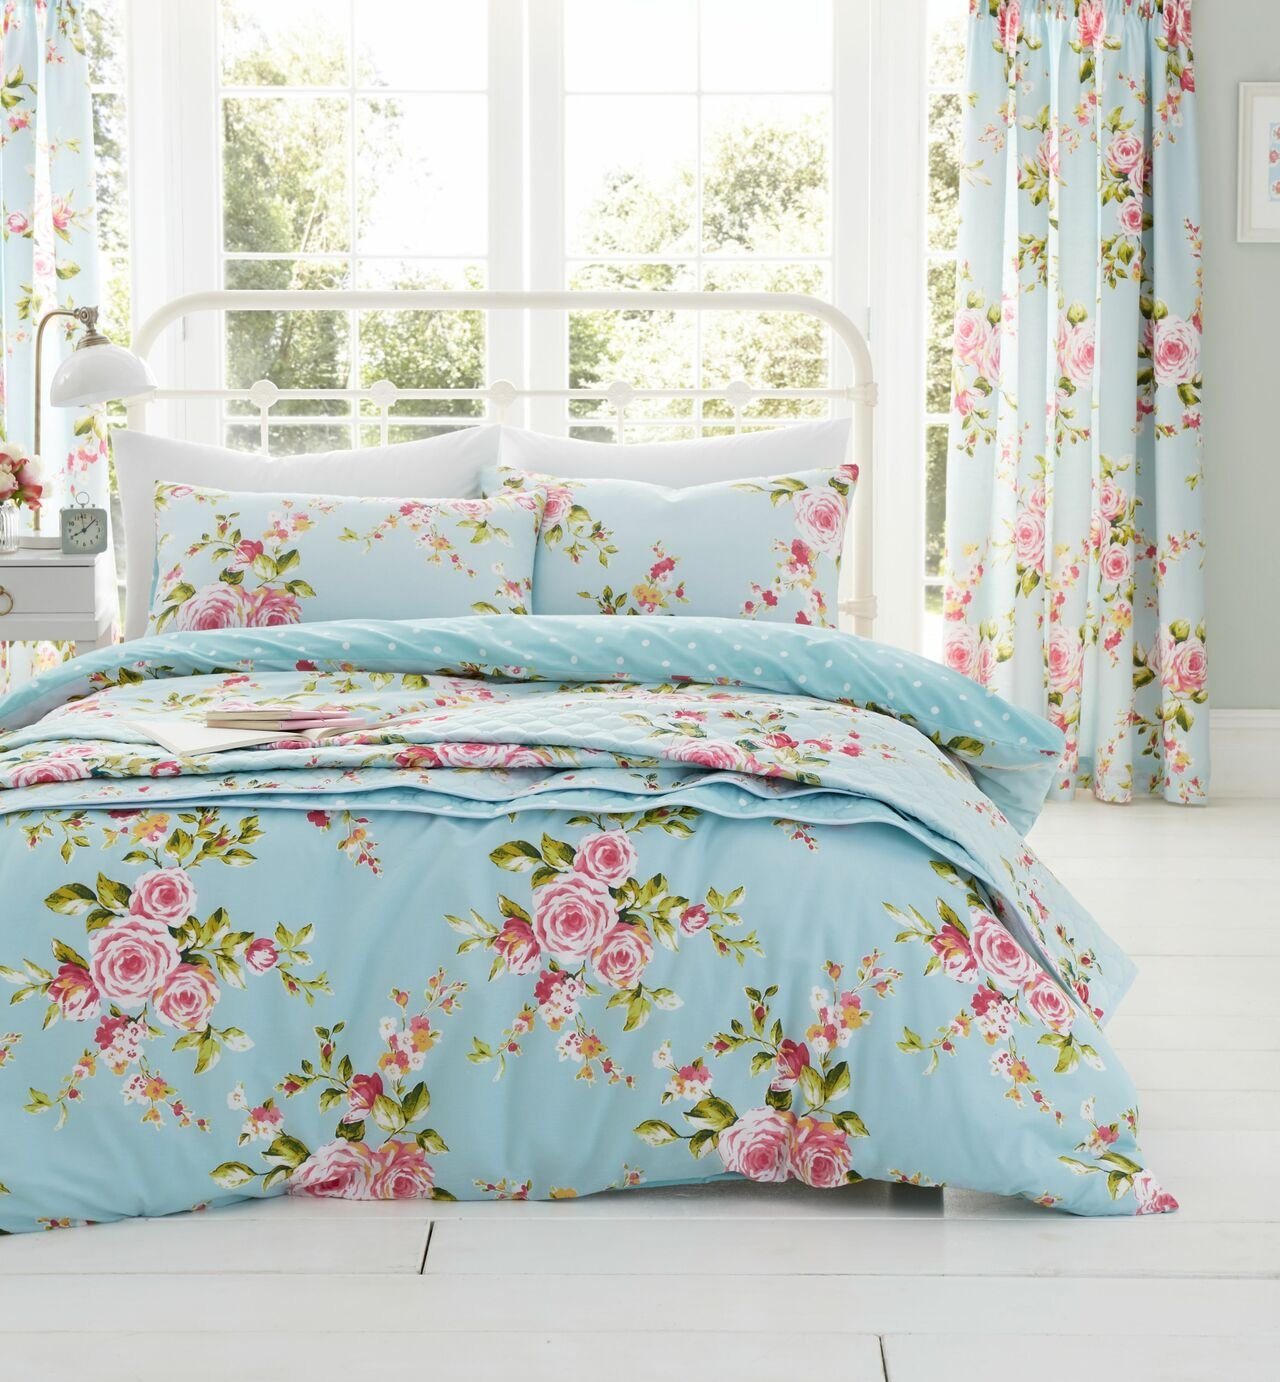 Image of Catherine Lansfield Canterbury Floral Bedding Set - Kingsize - Blue